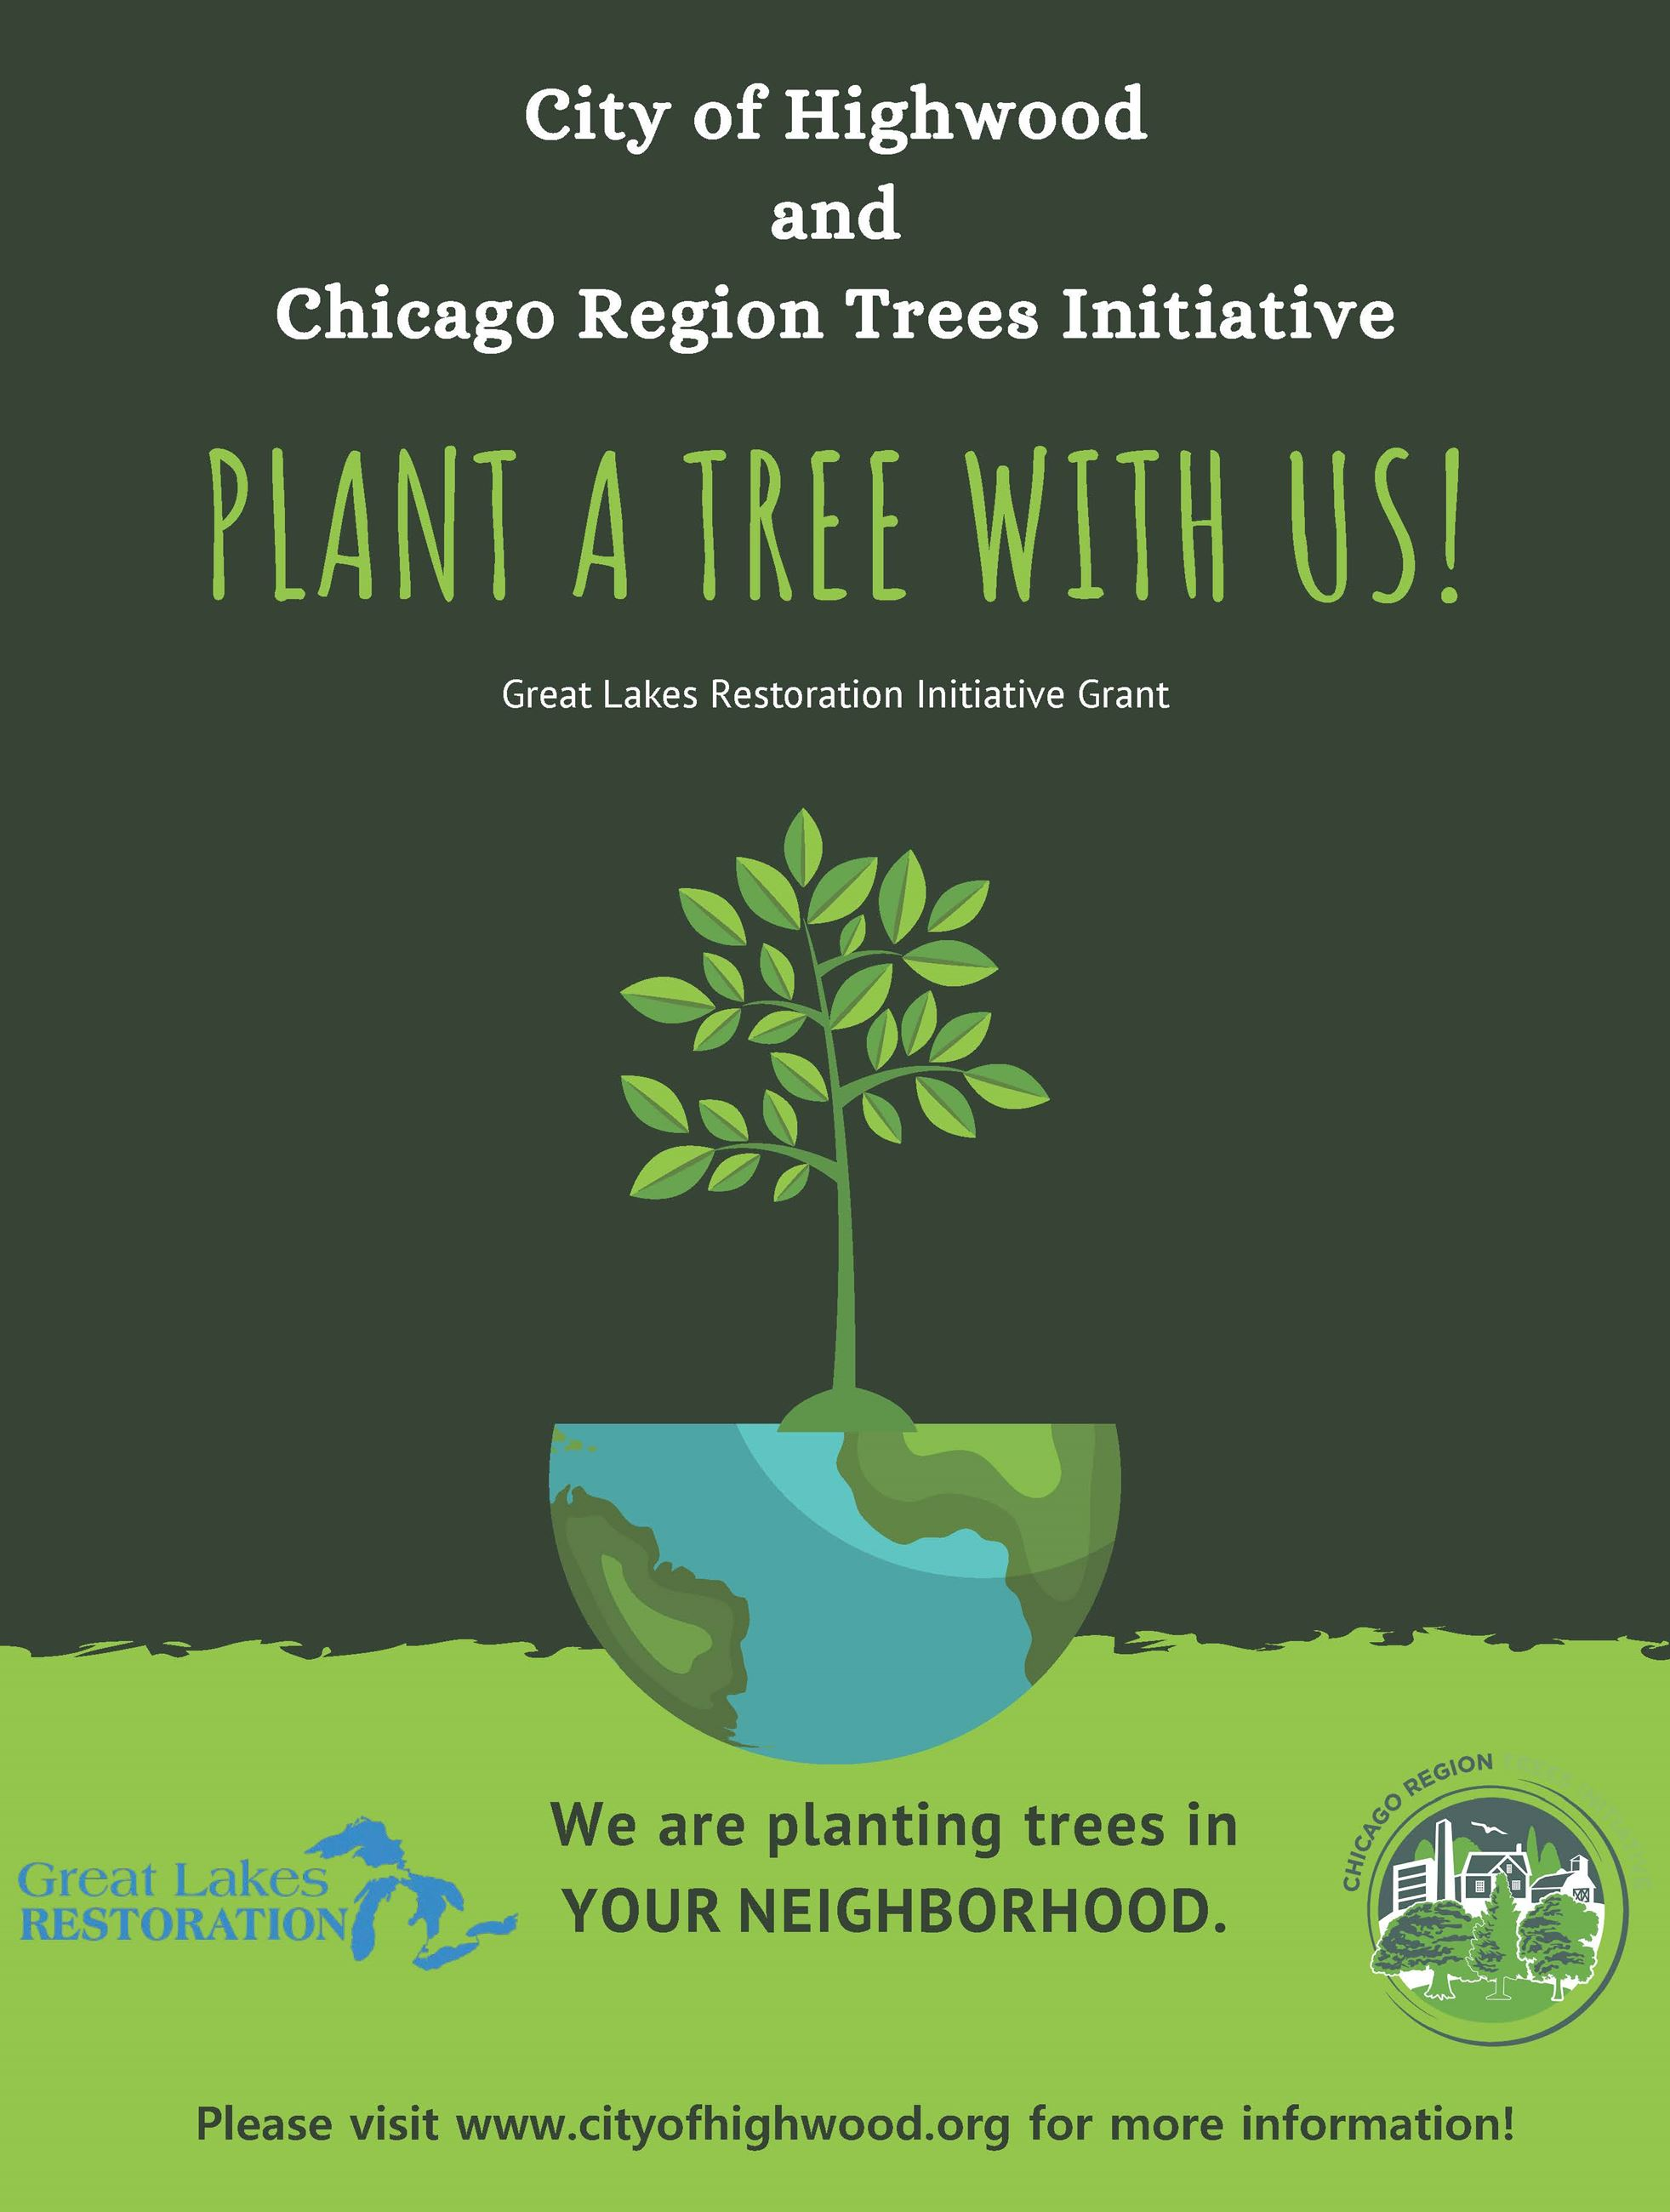 City of Highwood and Chicago Region Trees Initative Poster